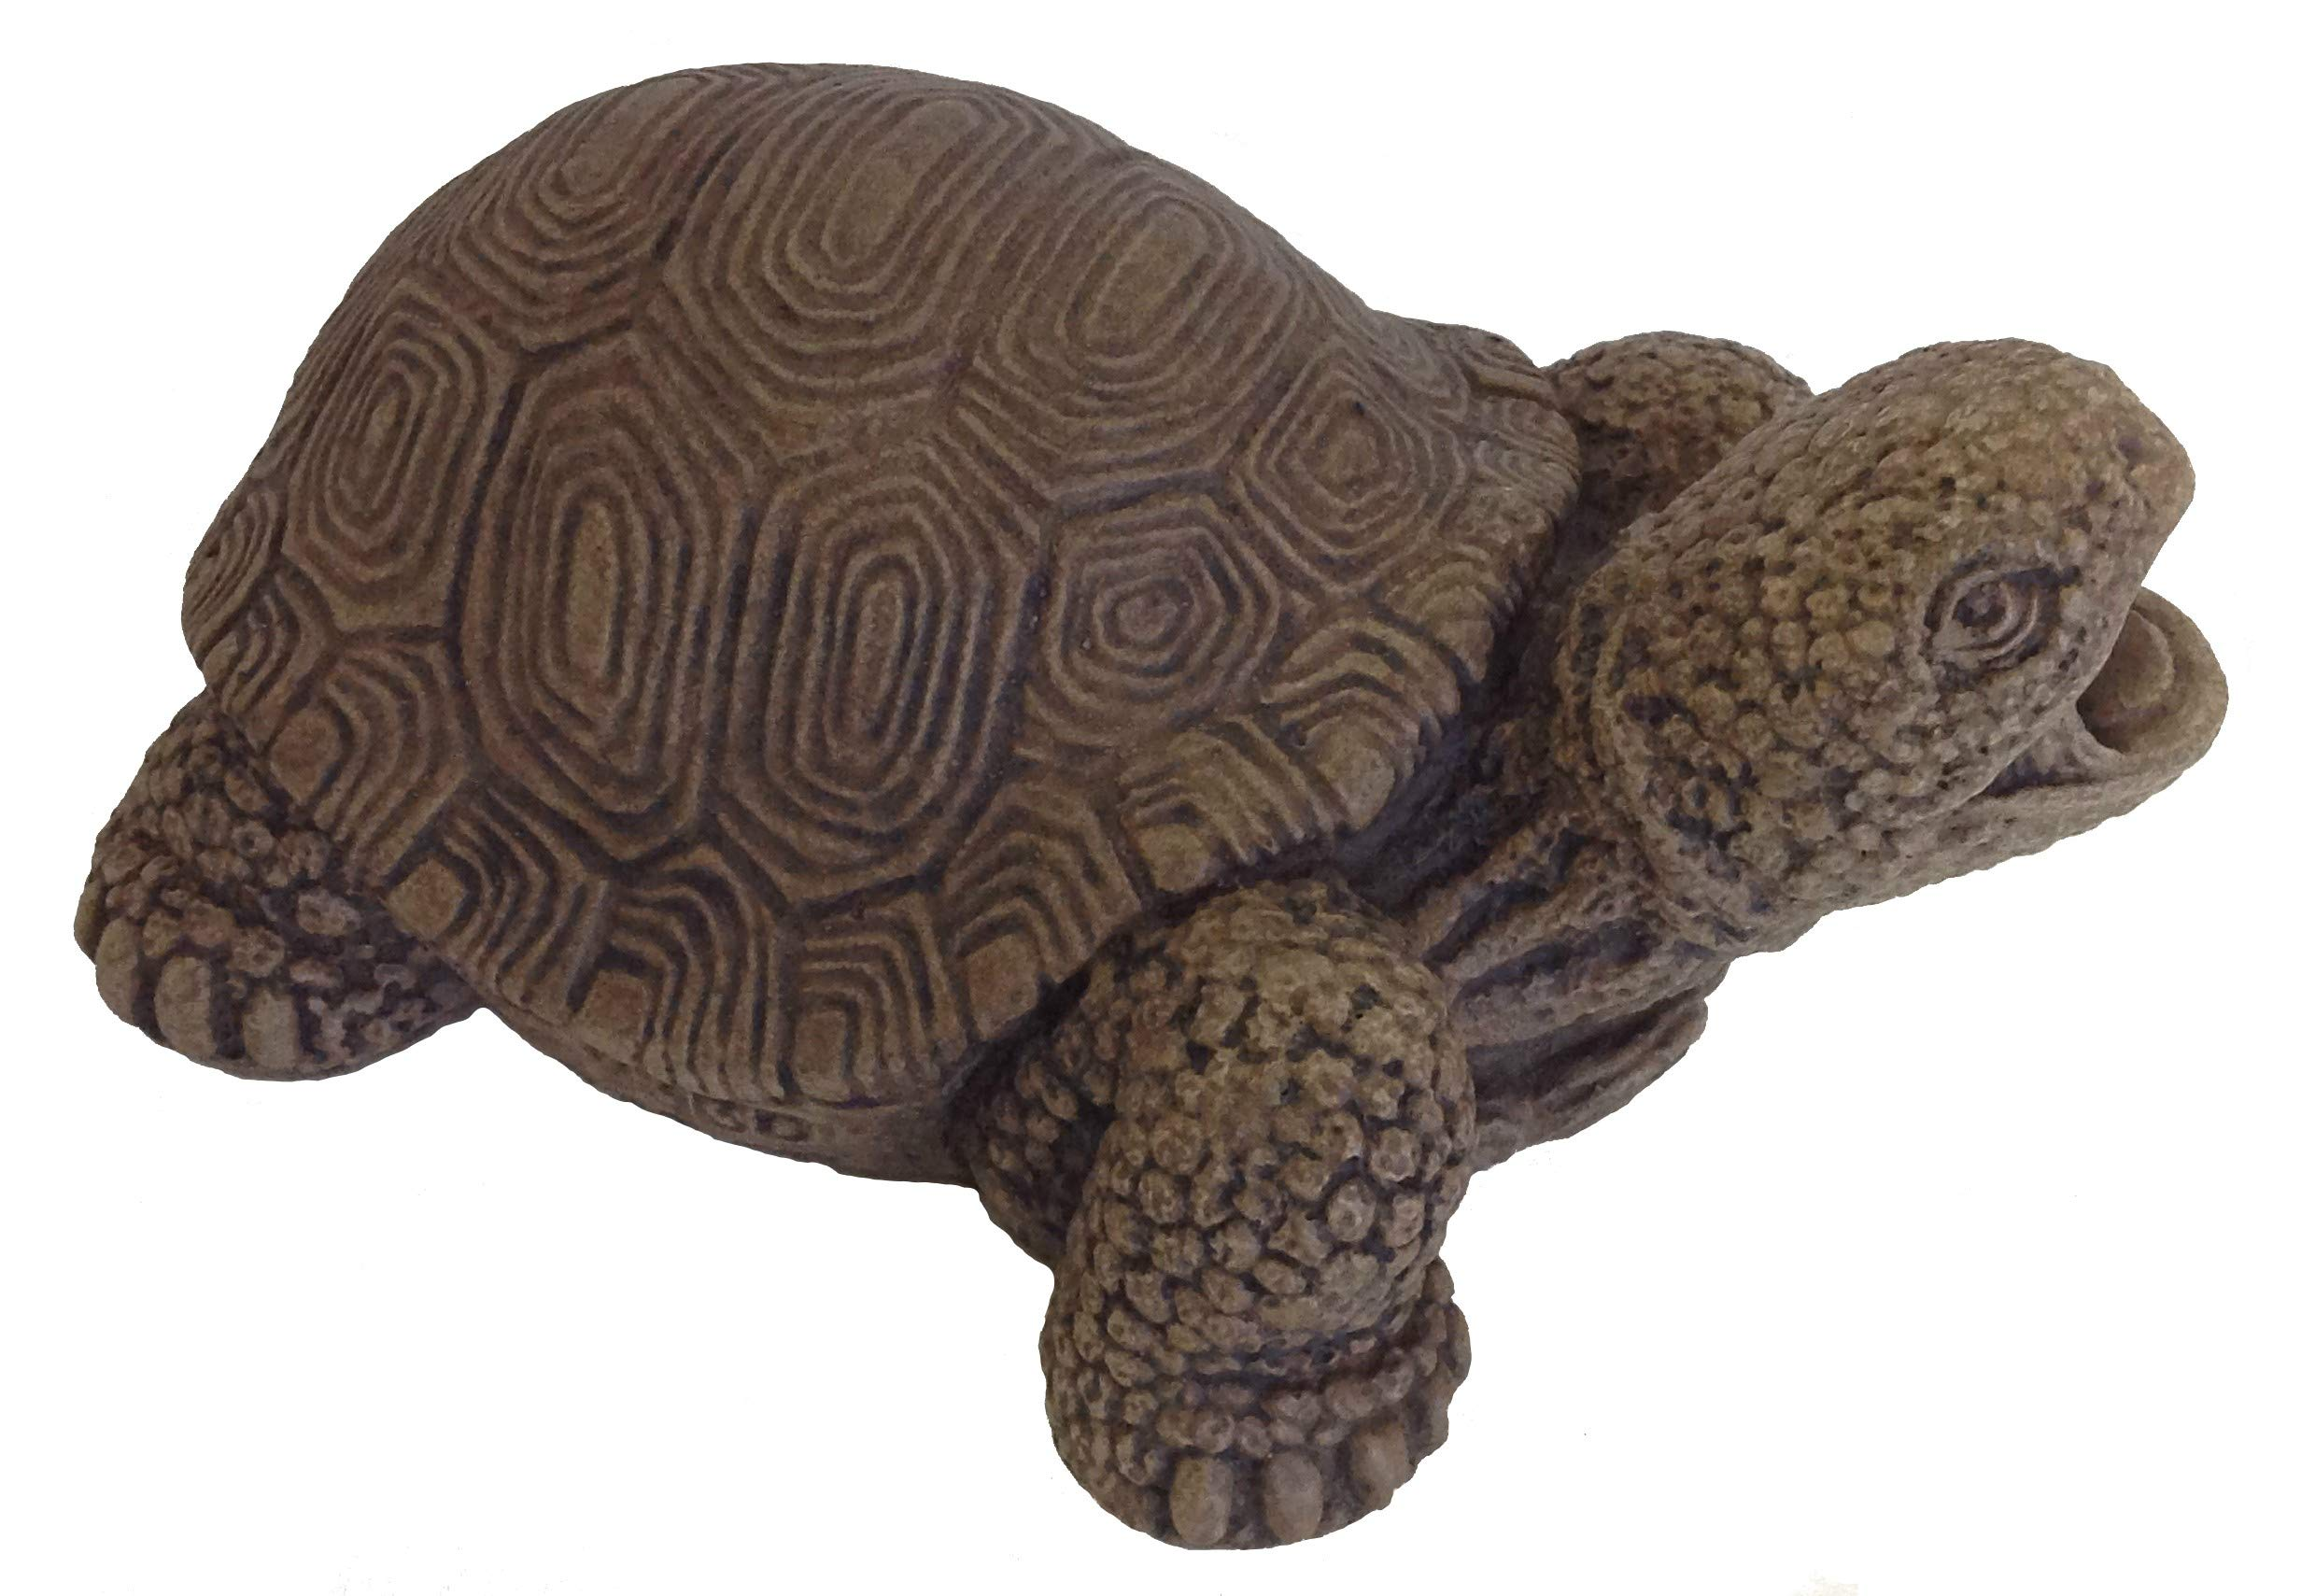 Massarelli's Turtle Plumbed Spitter - Solid Cast Stone Lifelike Sculpture, Great Pond and Garden Gift Idea, Durable and Fun Statue Art